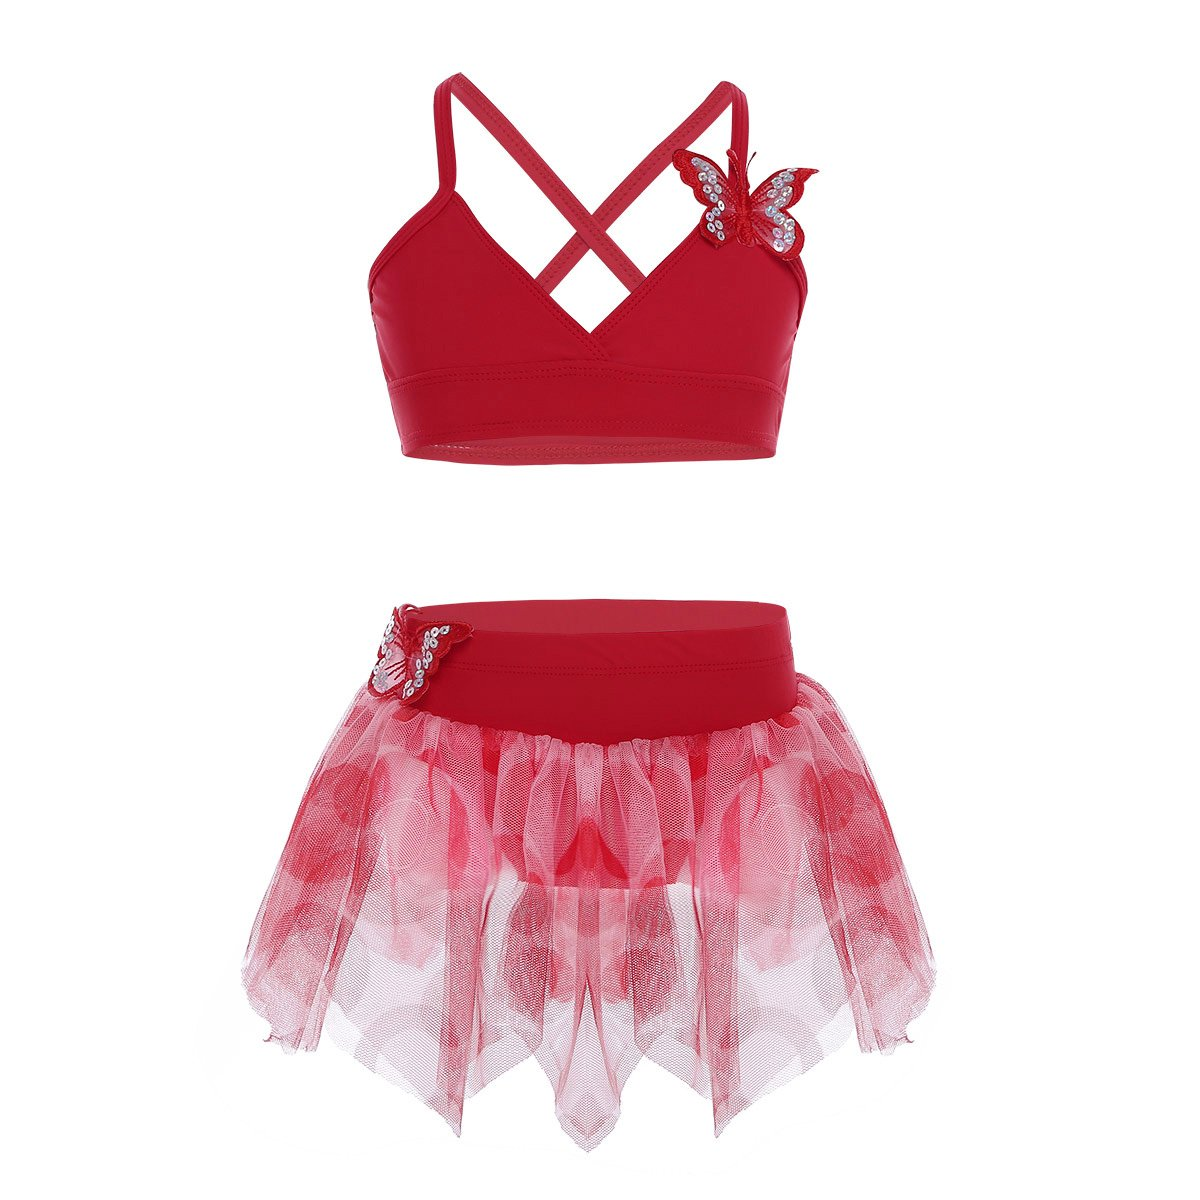 CHICTRY Kids Girls 2-Piece Butterfly Applique Tutu Skirt Top Set for Gymnastics Ballet Dancing Swimming